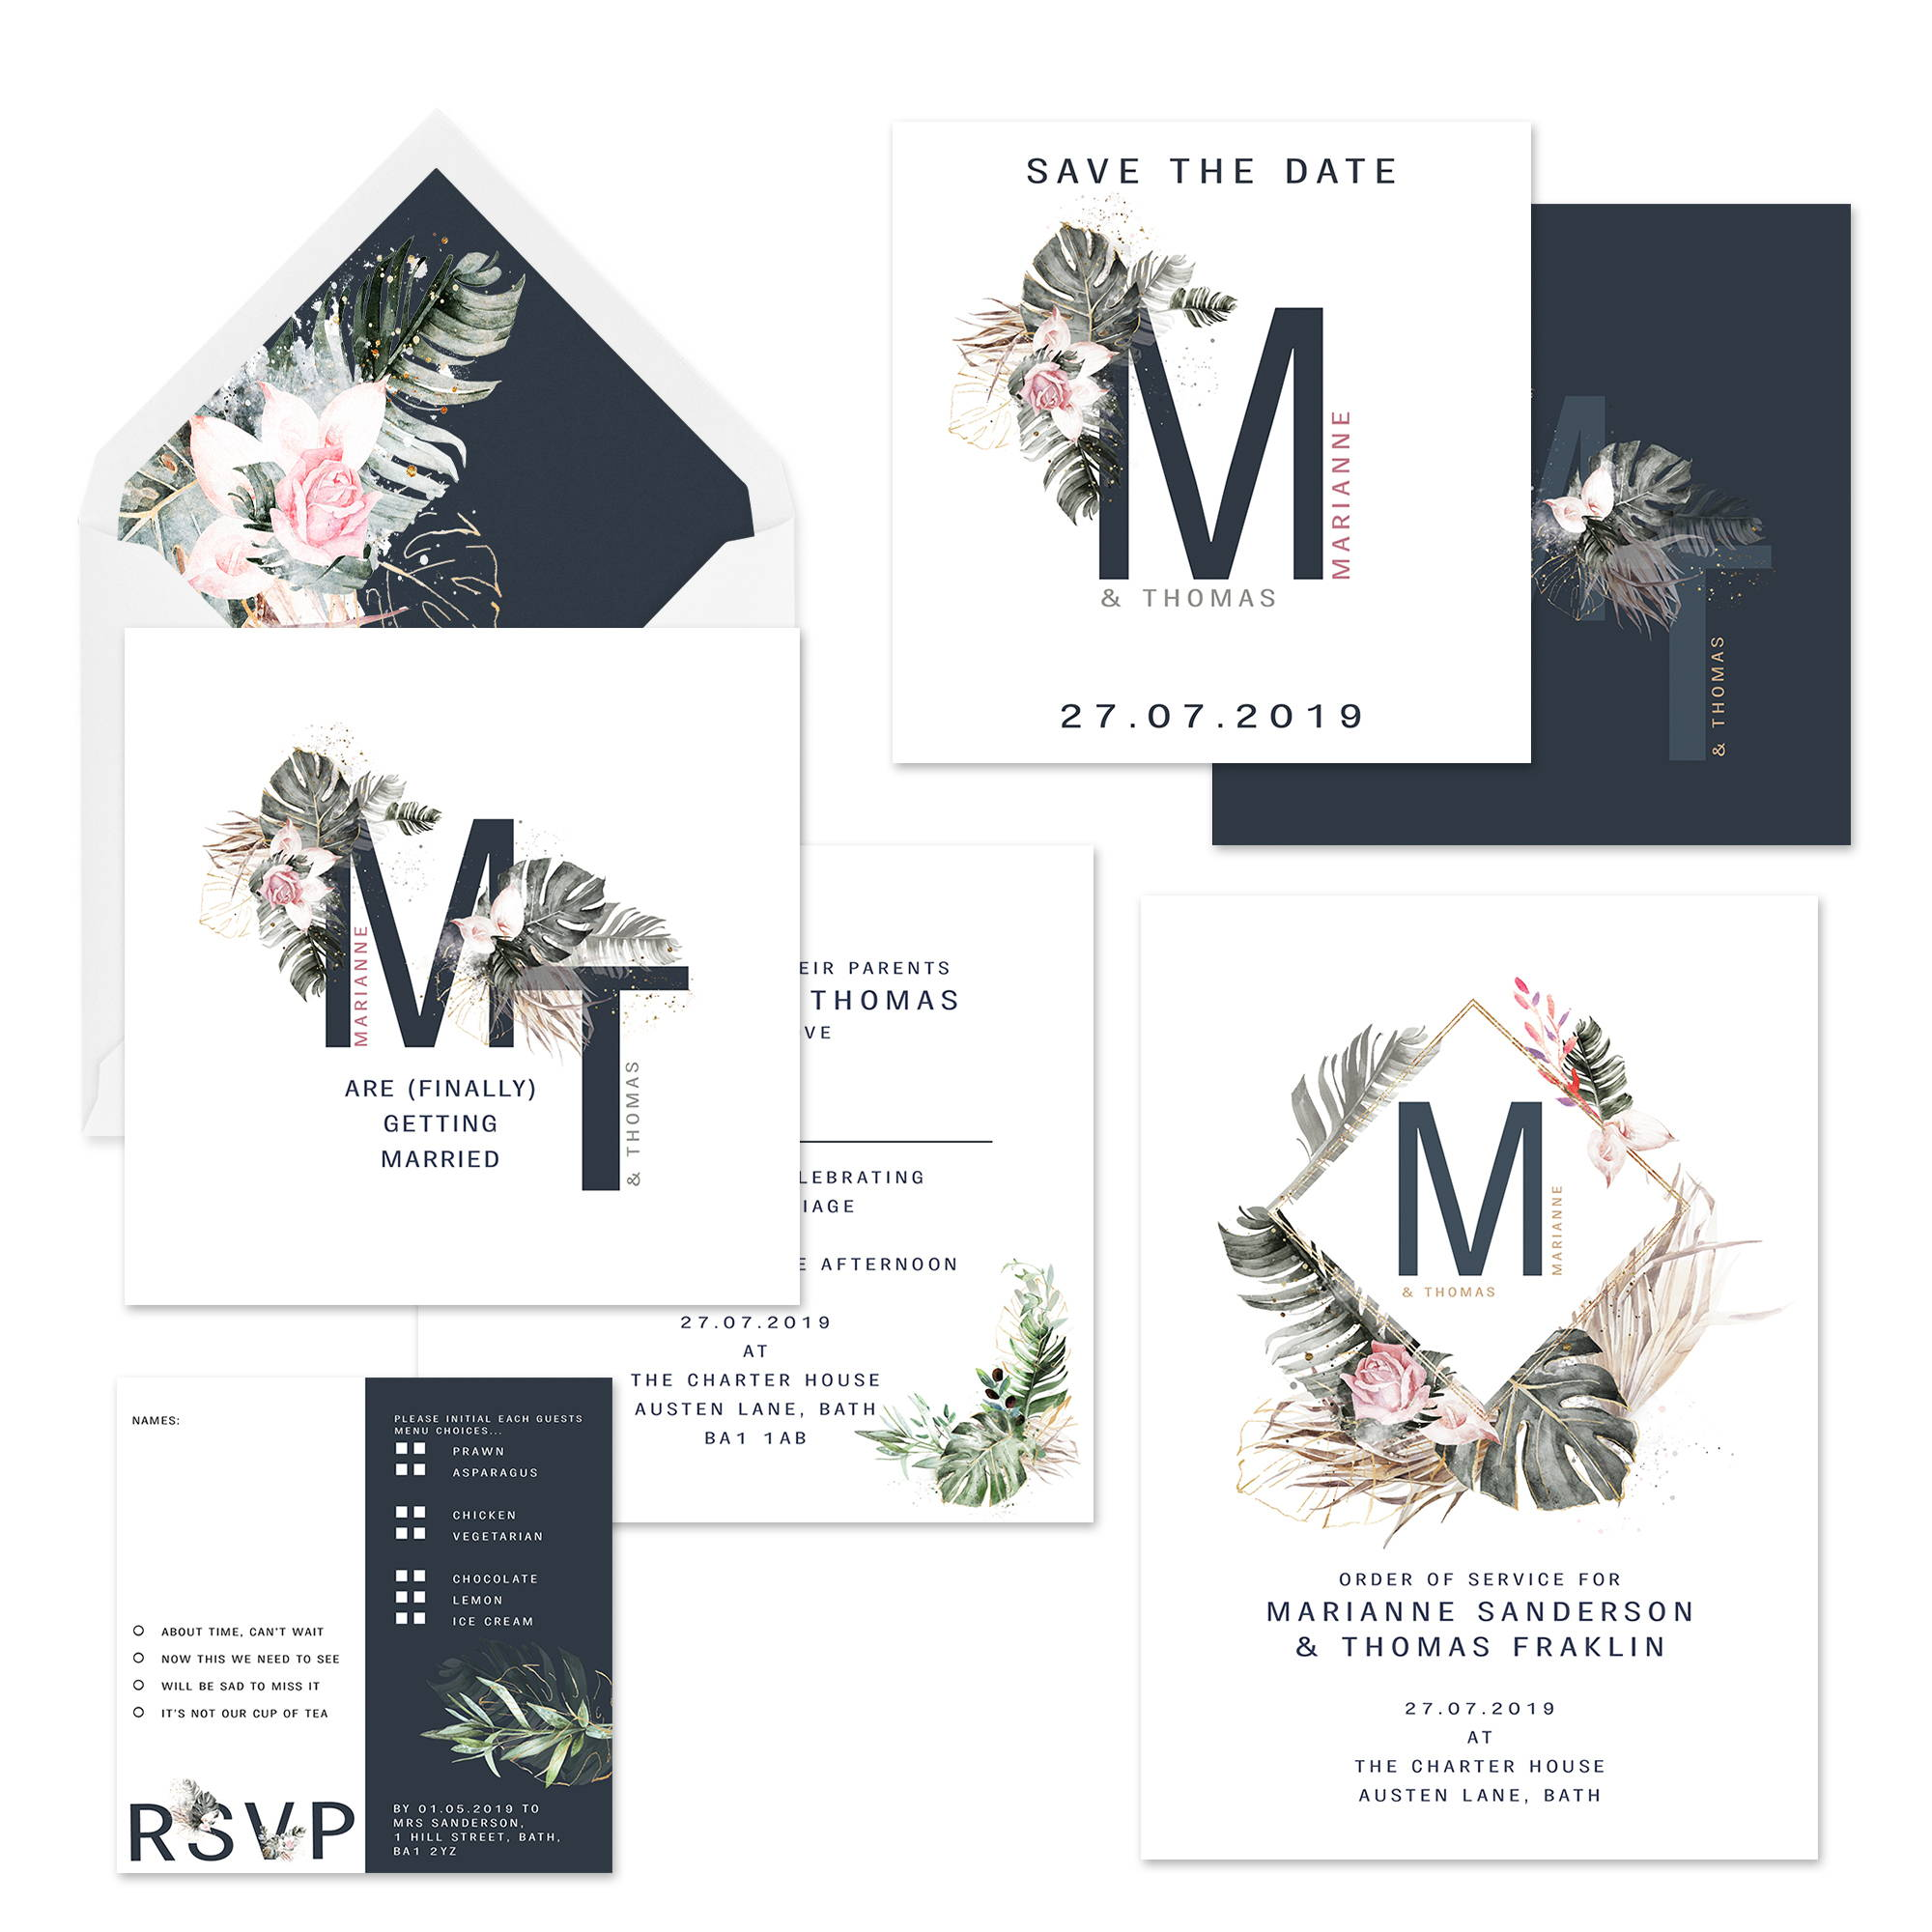 Mustard and Gray Ledbury Floral Monogramed Wedding Stationery